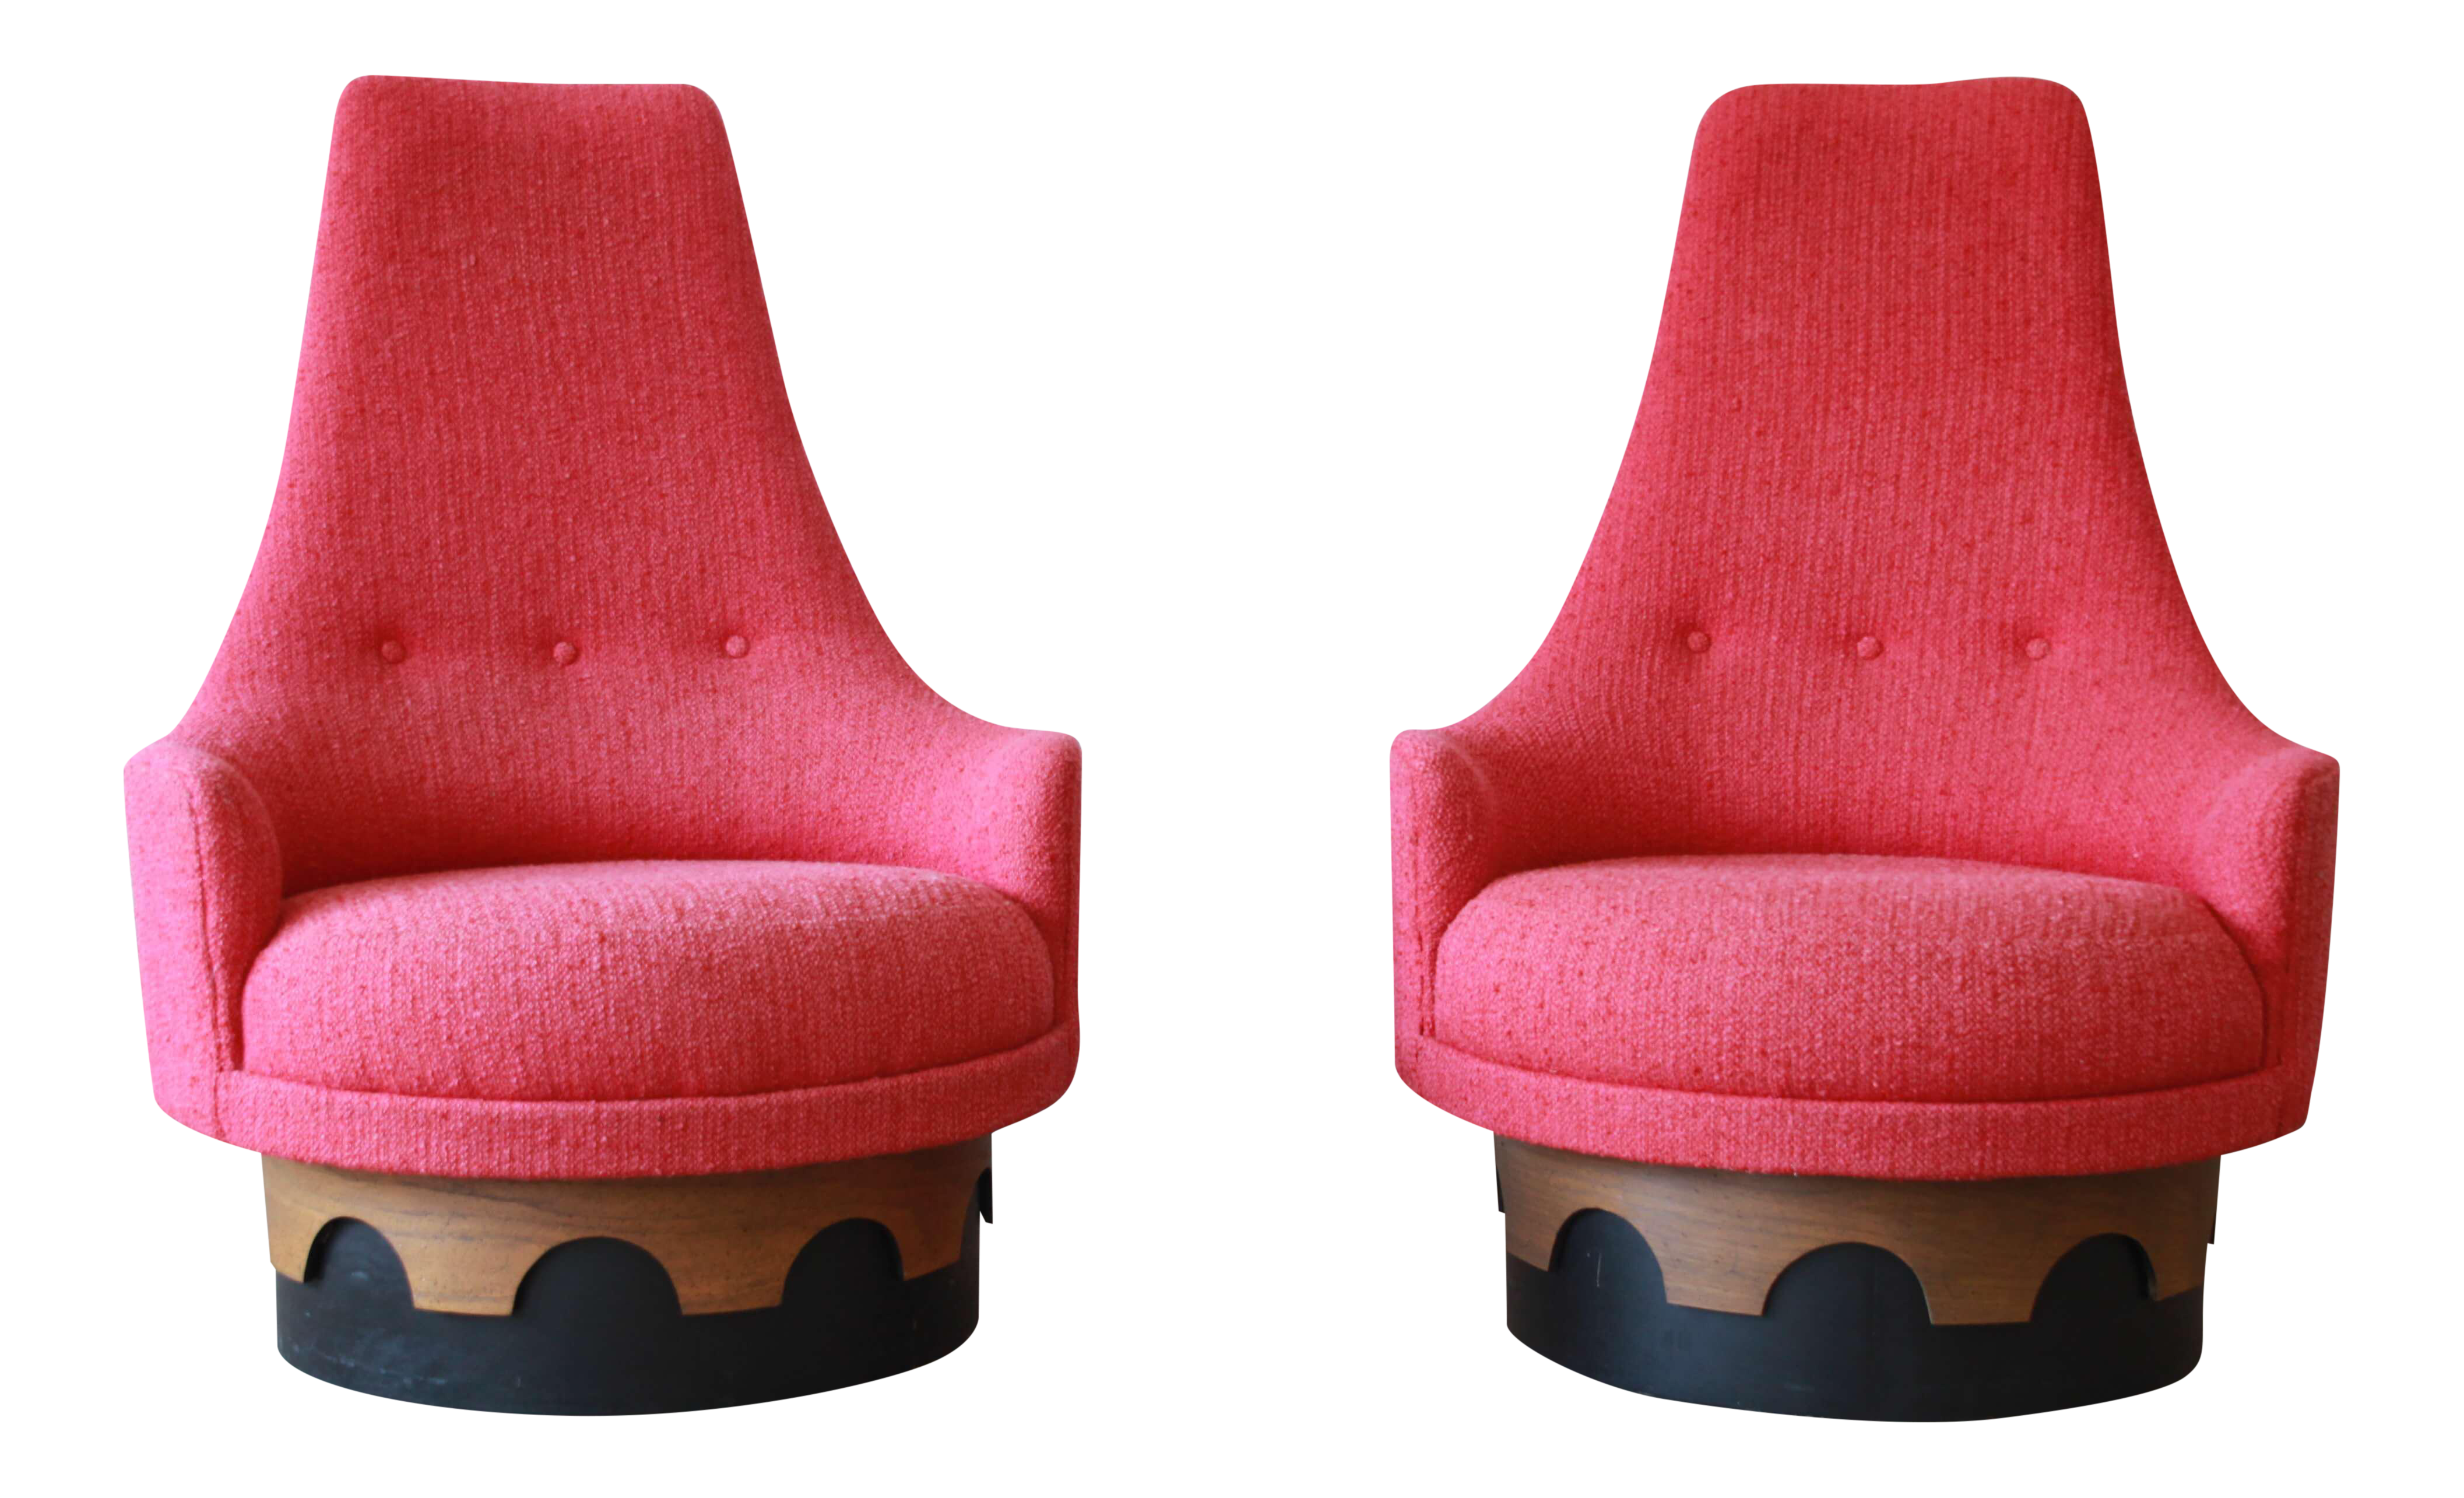 Charmant 1960s Vintage Adrian Pearsall High Back Swivel Chairs   A Pair | Chairish